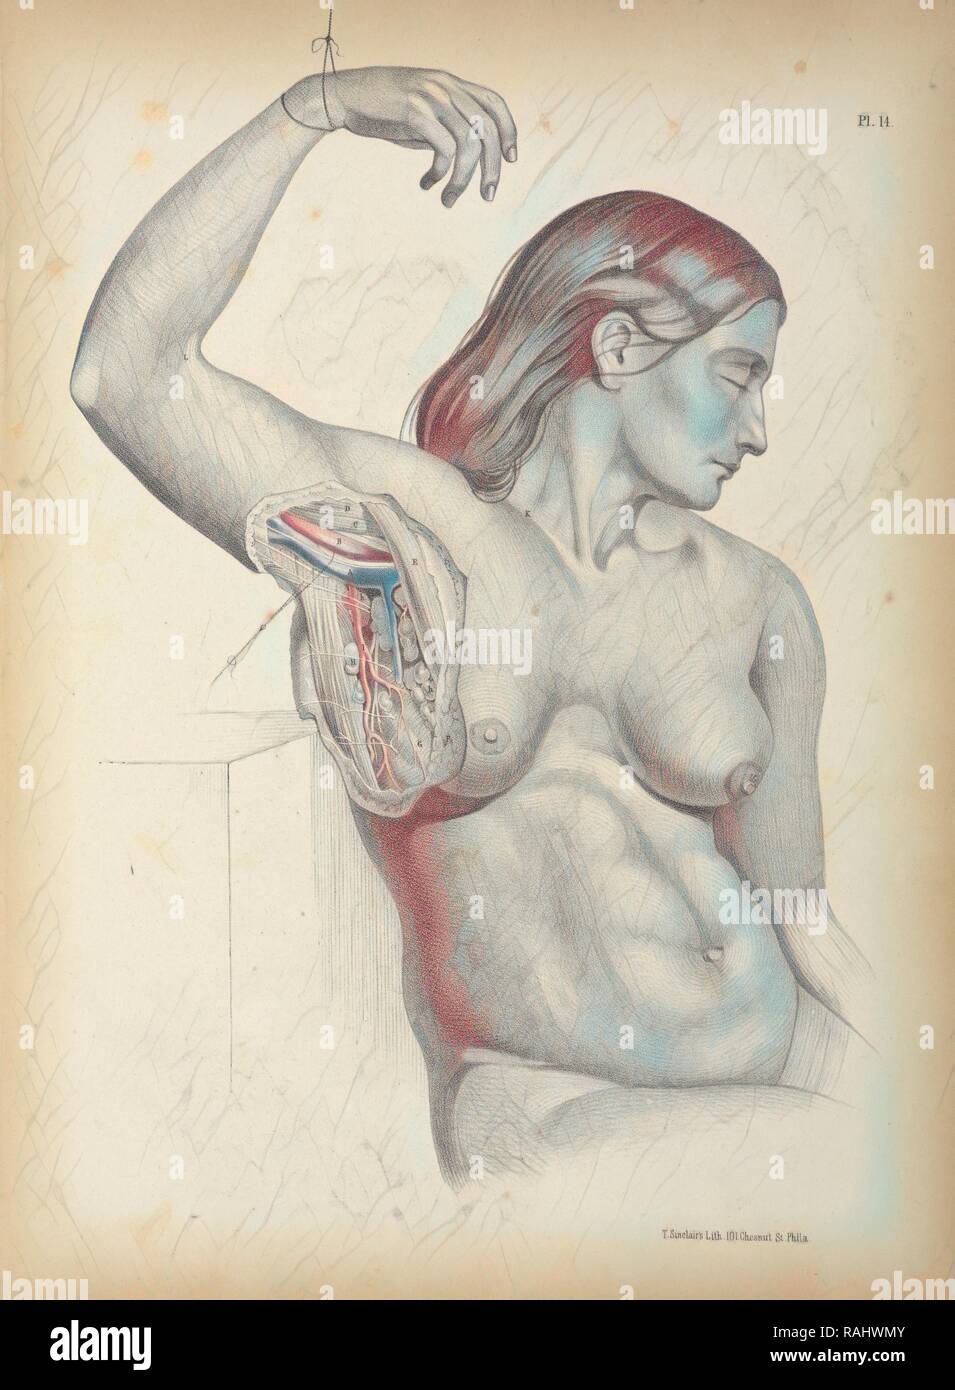 Pl. 14, Surgical anatomy, Maclise, Joseph, Lithography, 1851, Colored lithograph. Maclise is the author and reimagined - Stock Image